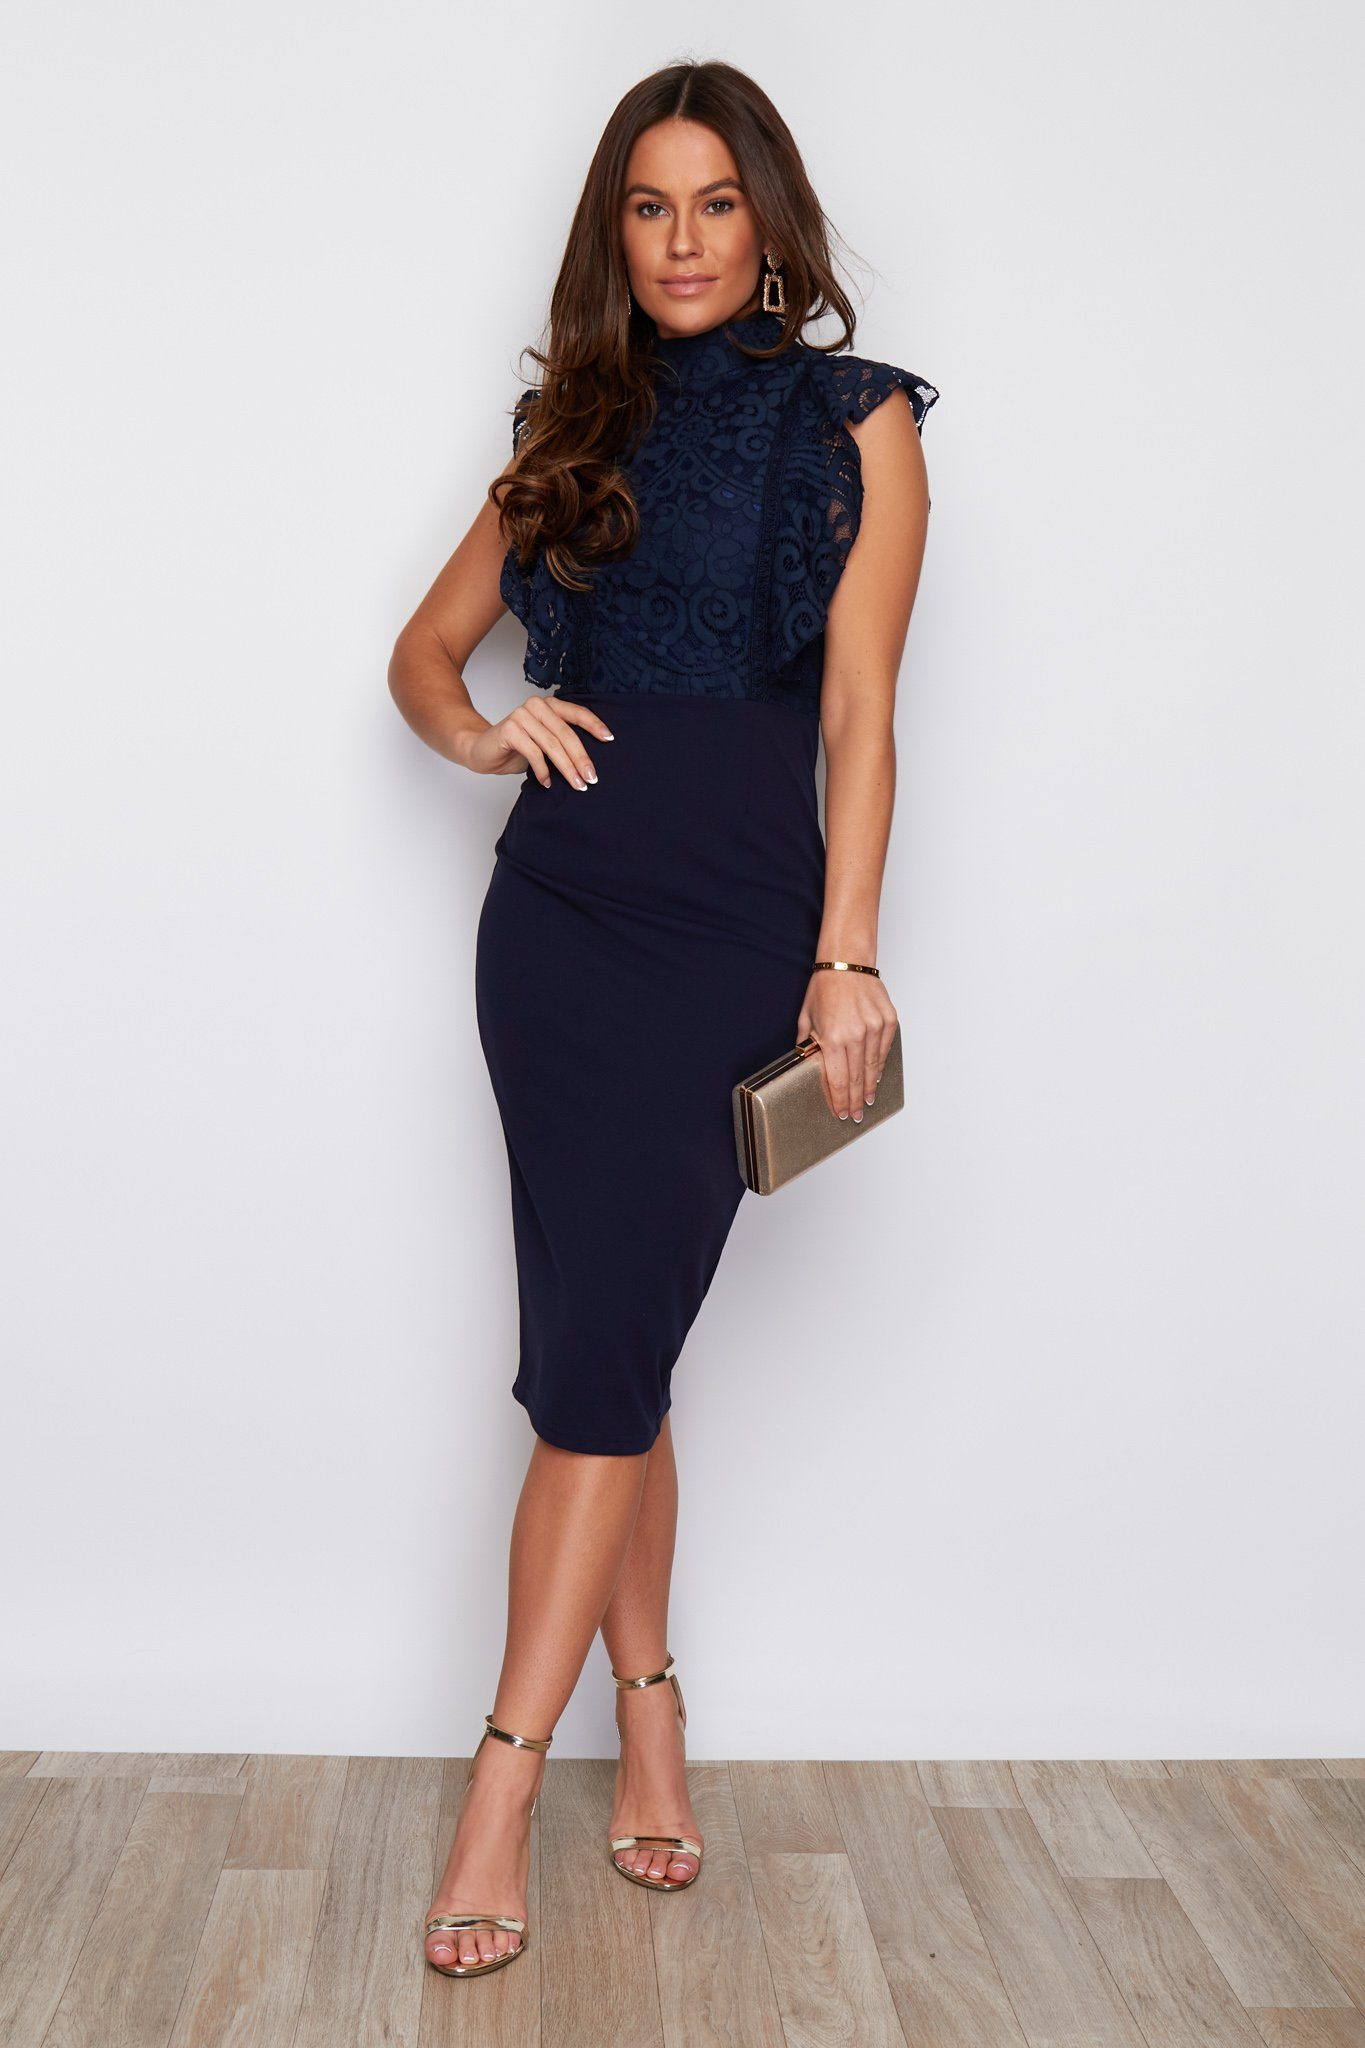 Danielle High Neck Frill Lace top Midi Dress Navy Dresses Girl In Mind